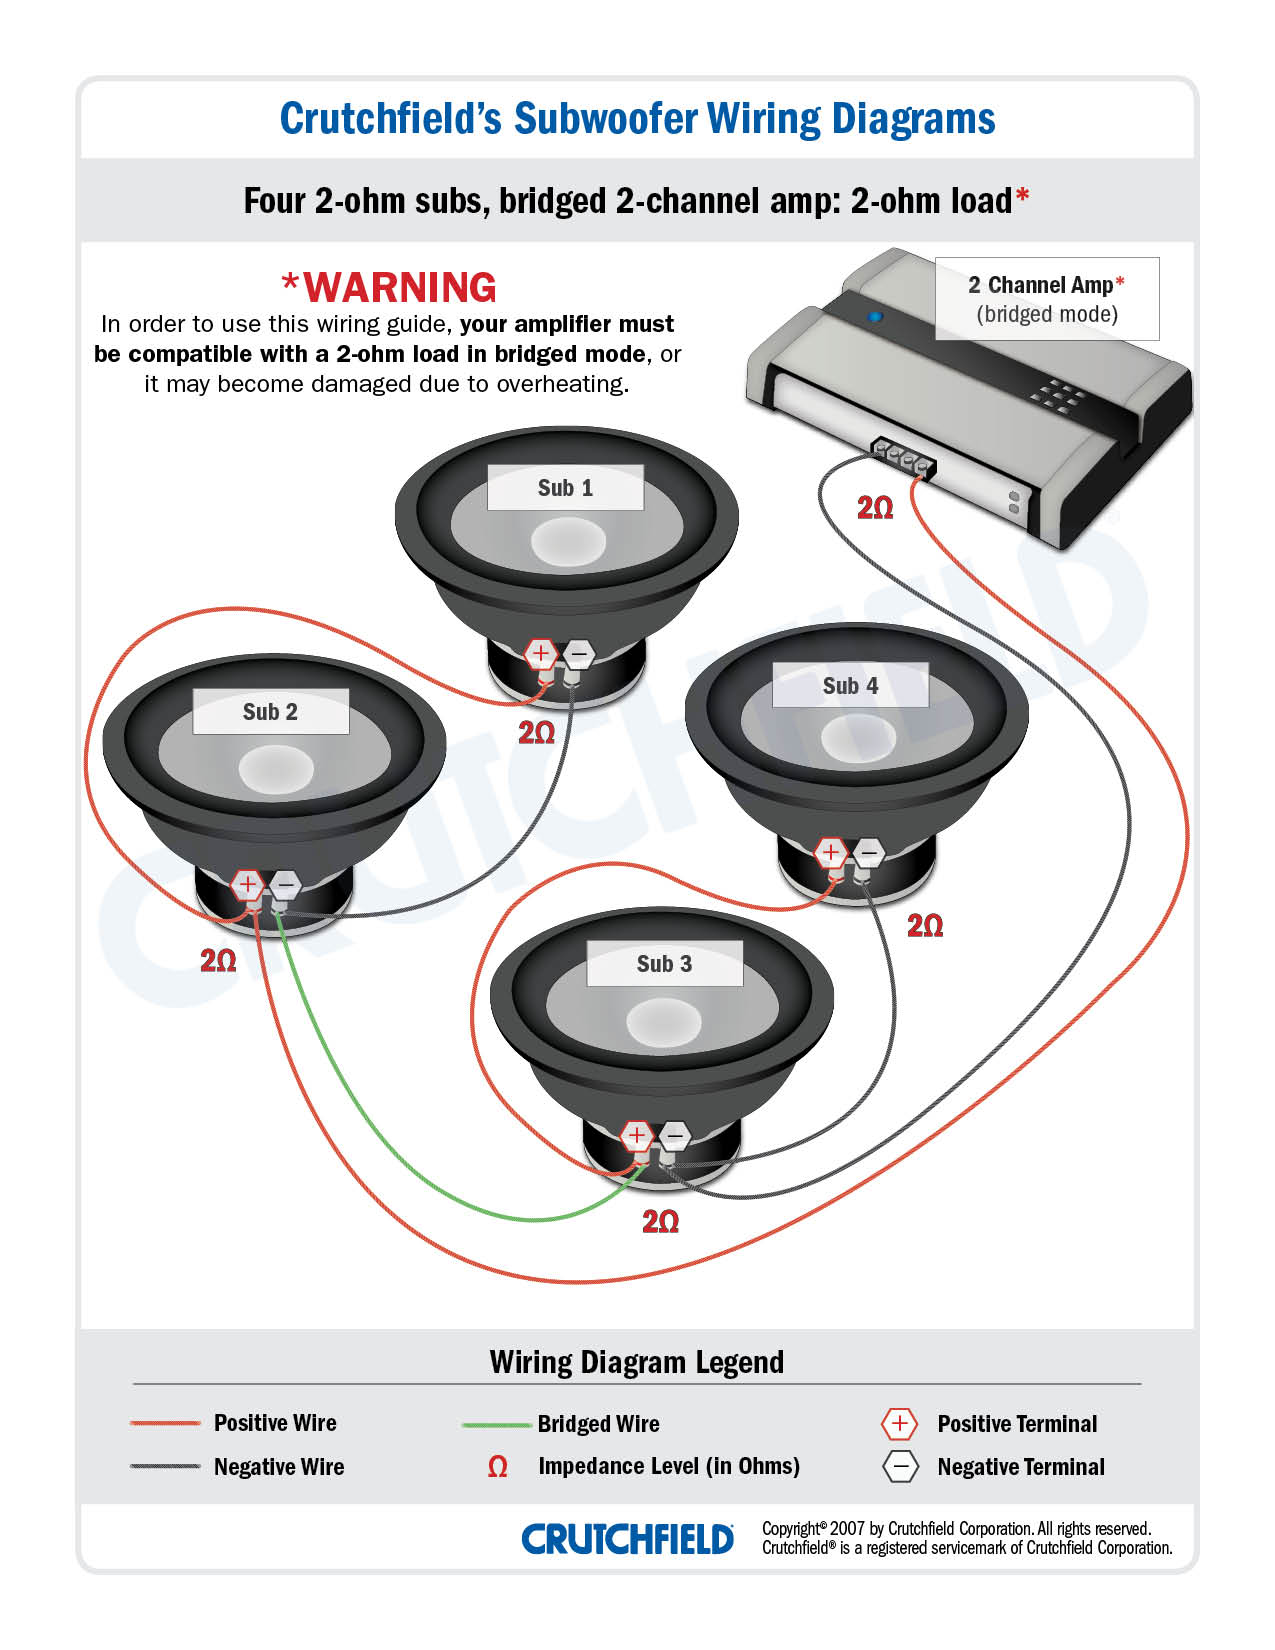 wiring diagram 1 subwoofer 4 ohm dvc subwoofer wiring diagrams 4 ohm dvc wiring diagram #11